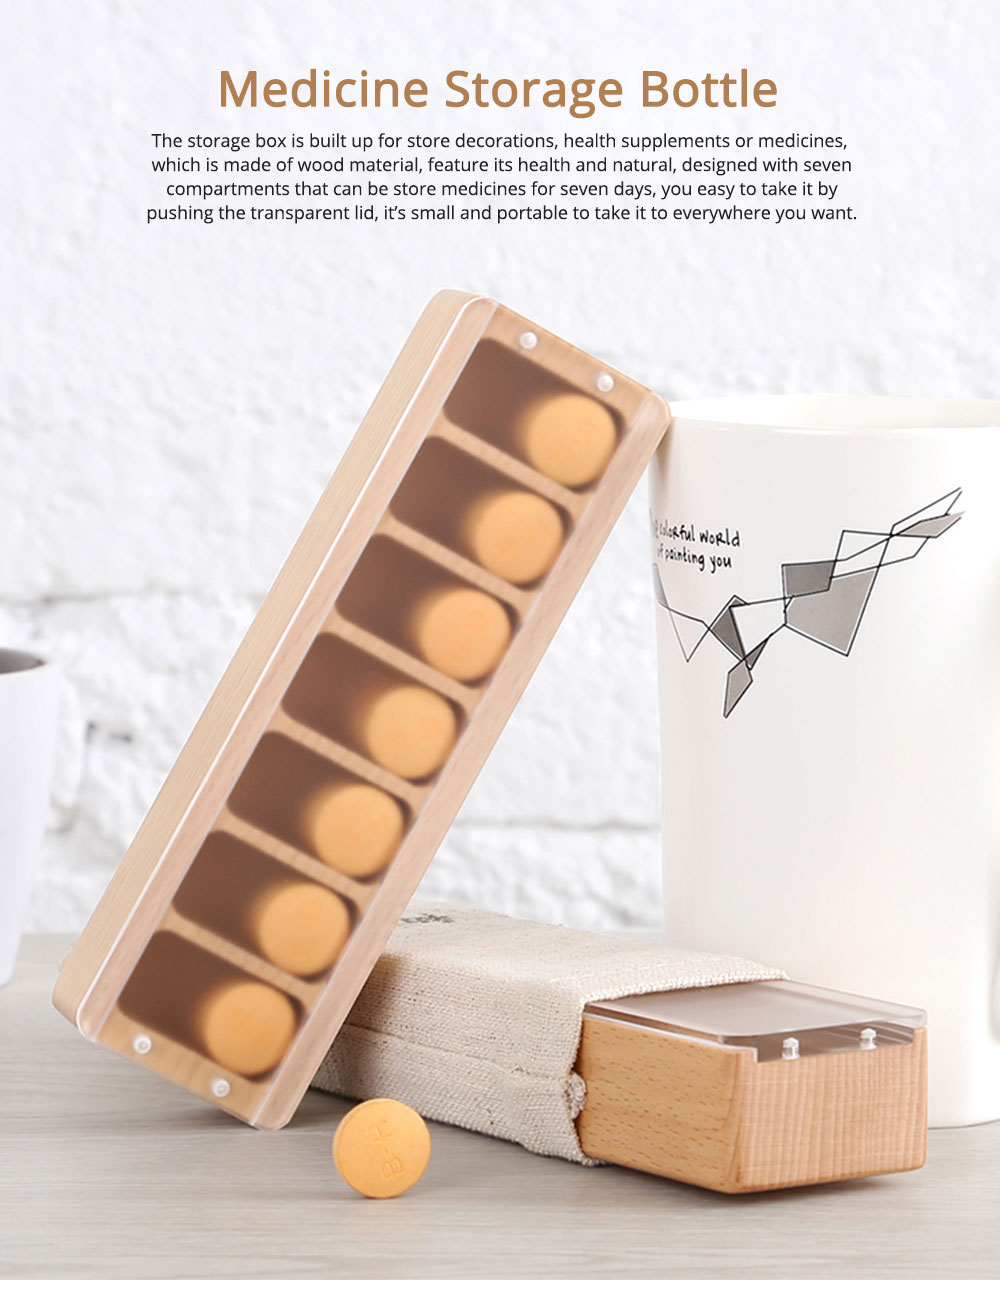 Natural Wood Material Pill Case with 7 Compartments, Weekly Container for Medicine Decorations Small Case 0